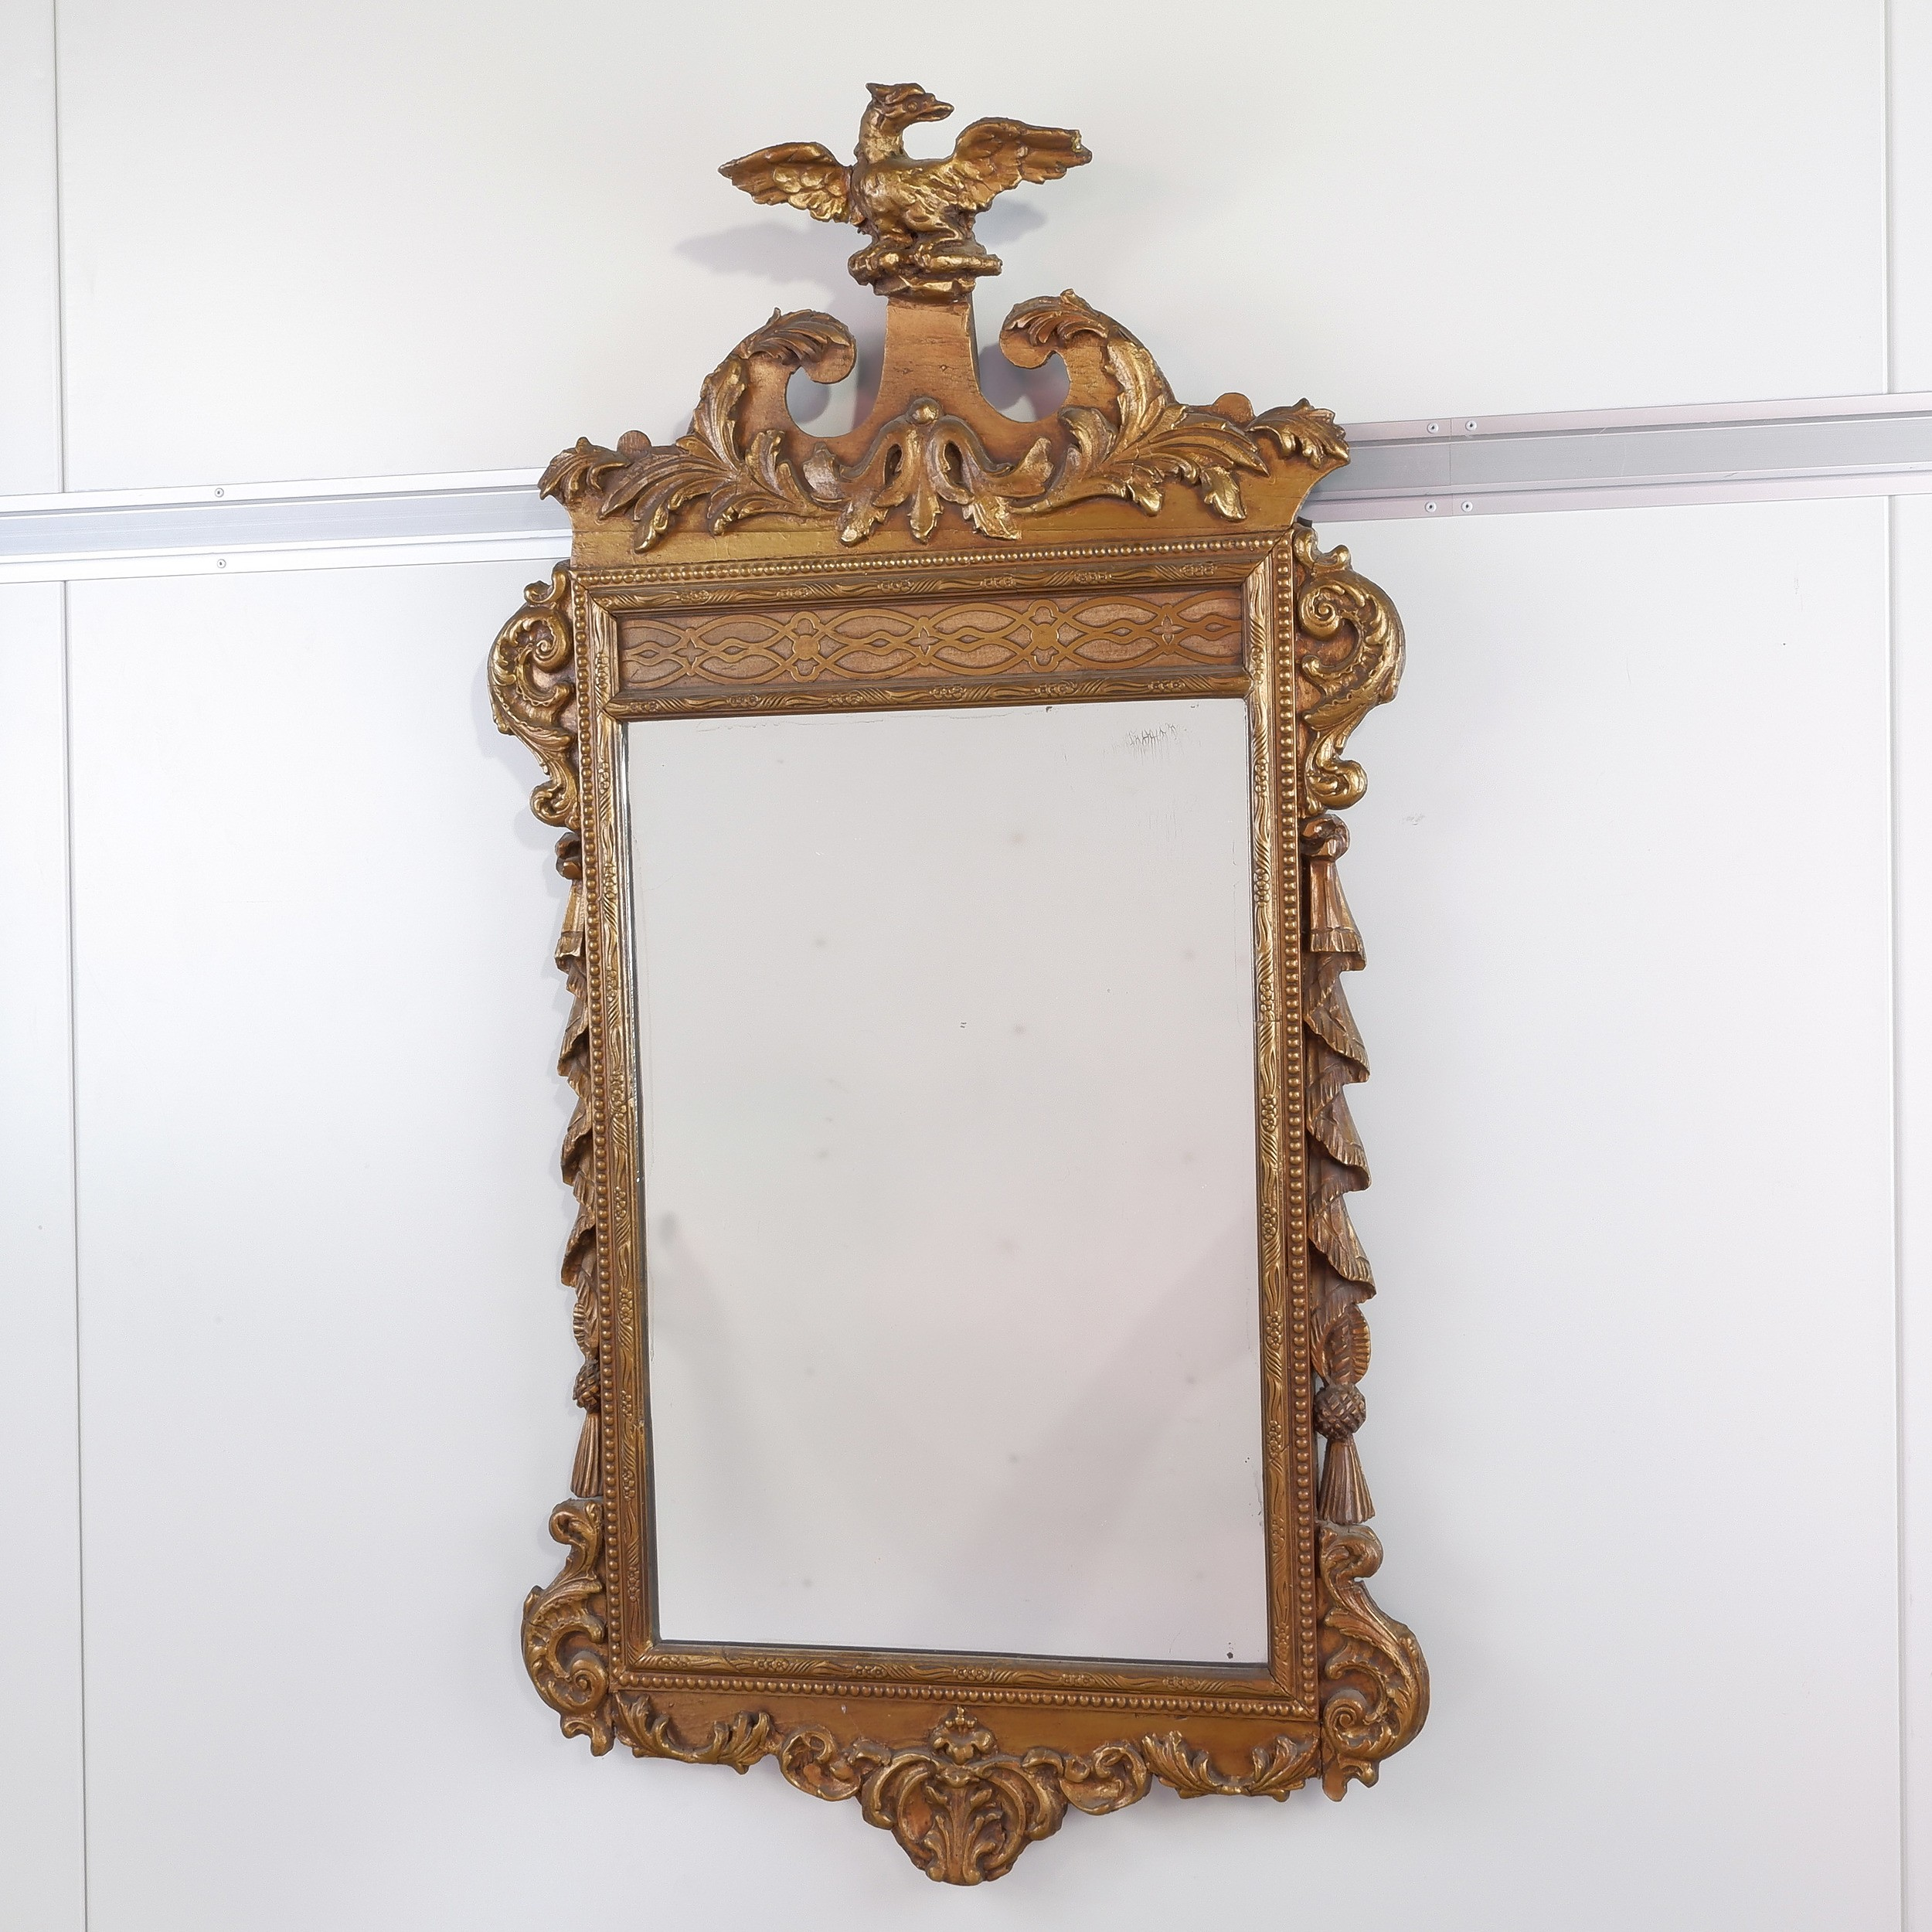 'Regency Carved Giltwood Pier Mirror with Eagle Crest 19th Century'